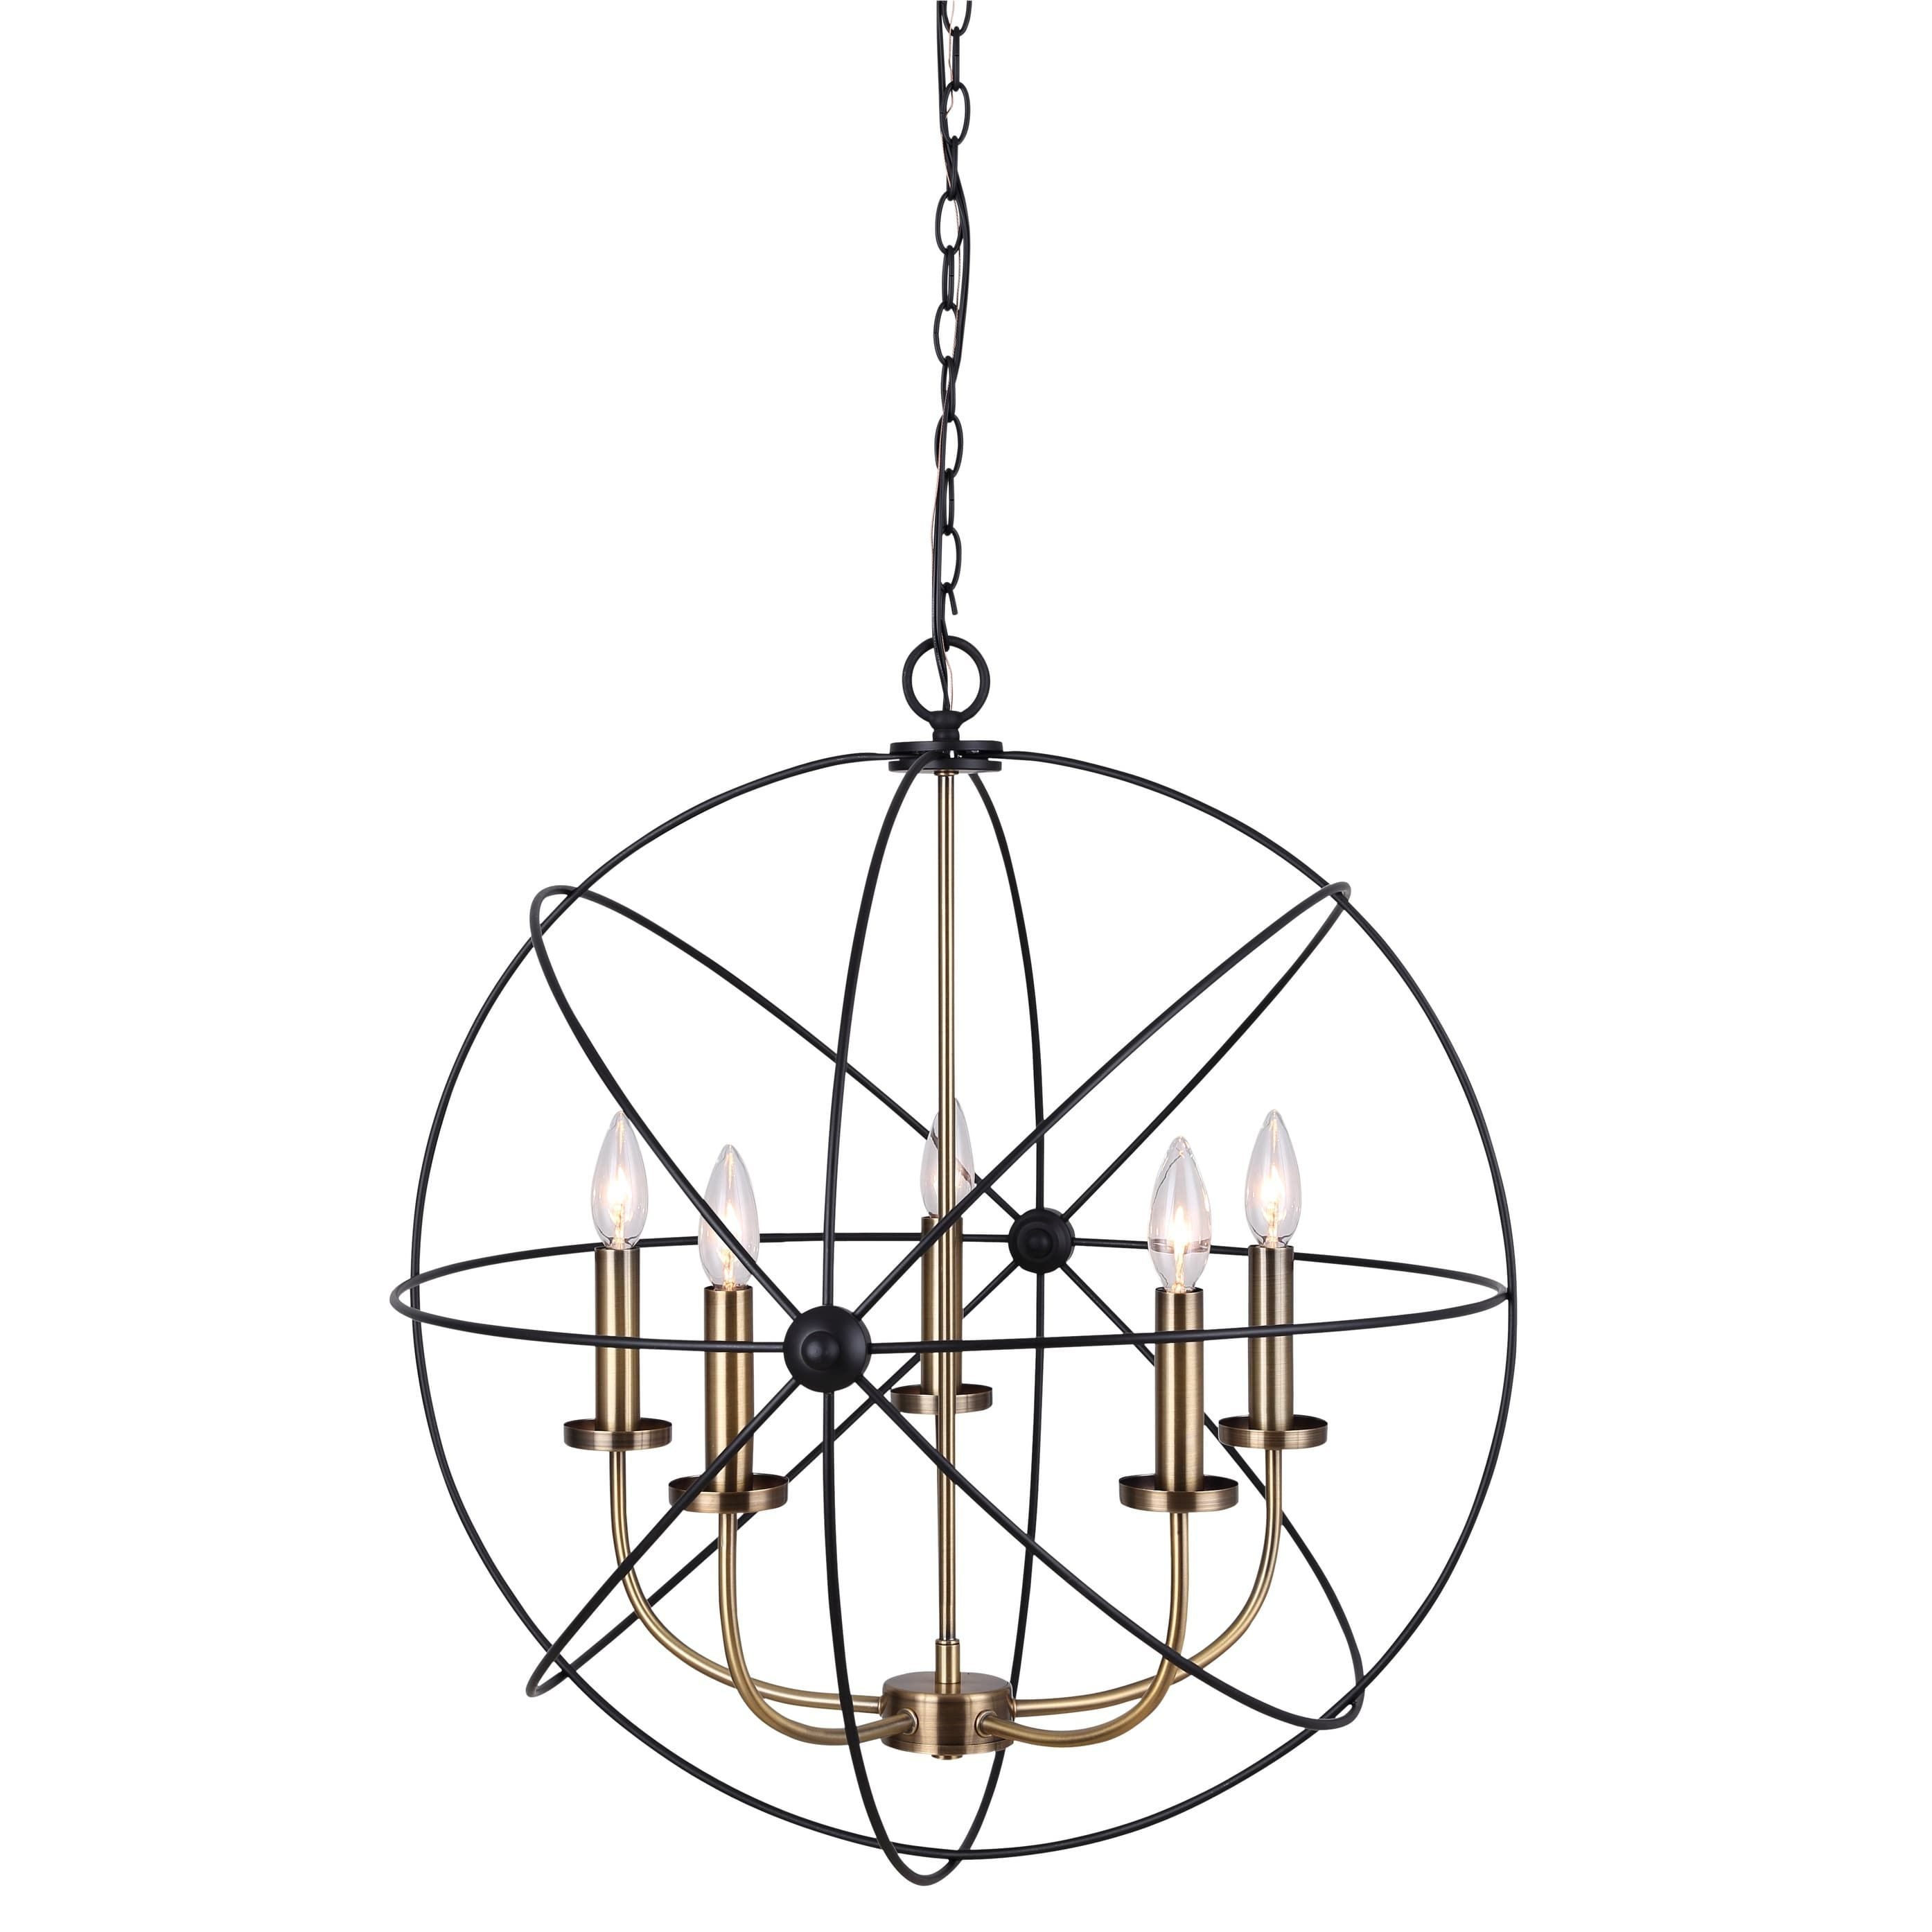 Canarm Summerside 5 Light Chain Chandelier - Black With Gold with Waldron 5-Light Globe Chandeliers (Image 4 of 30)